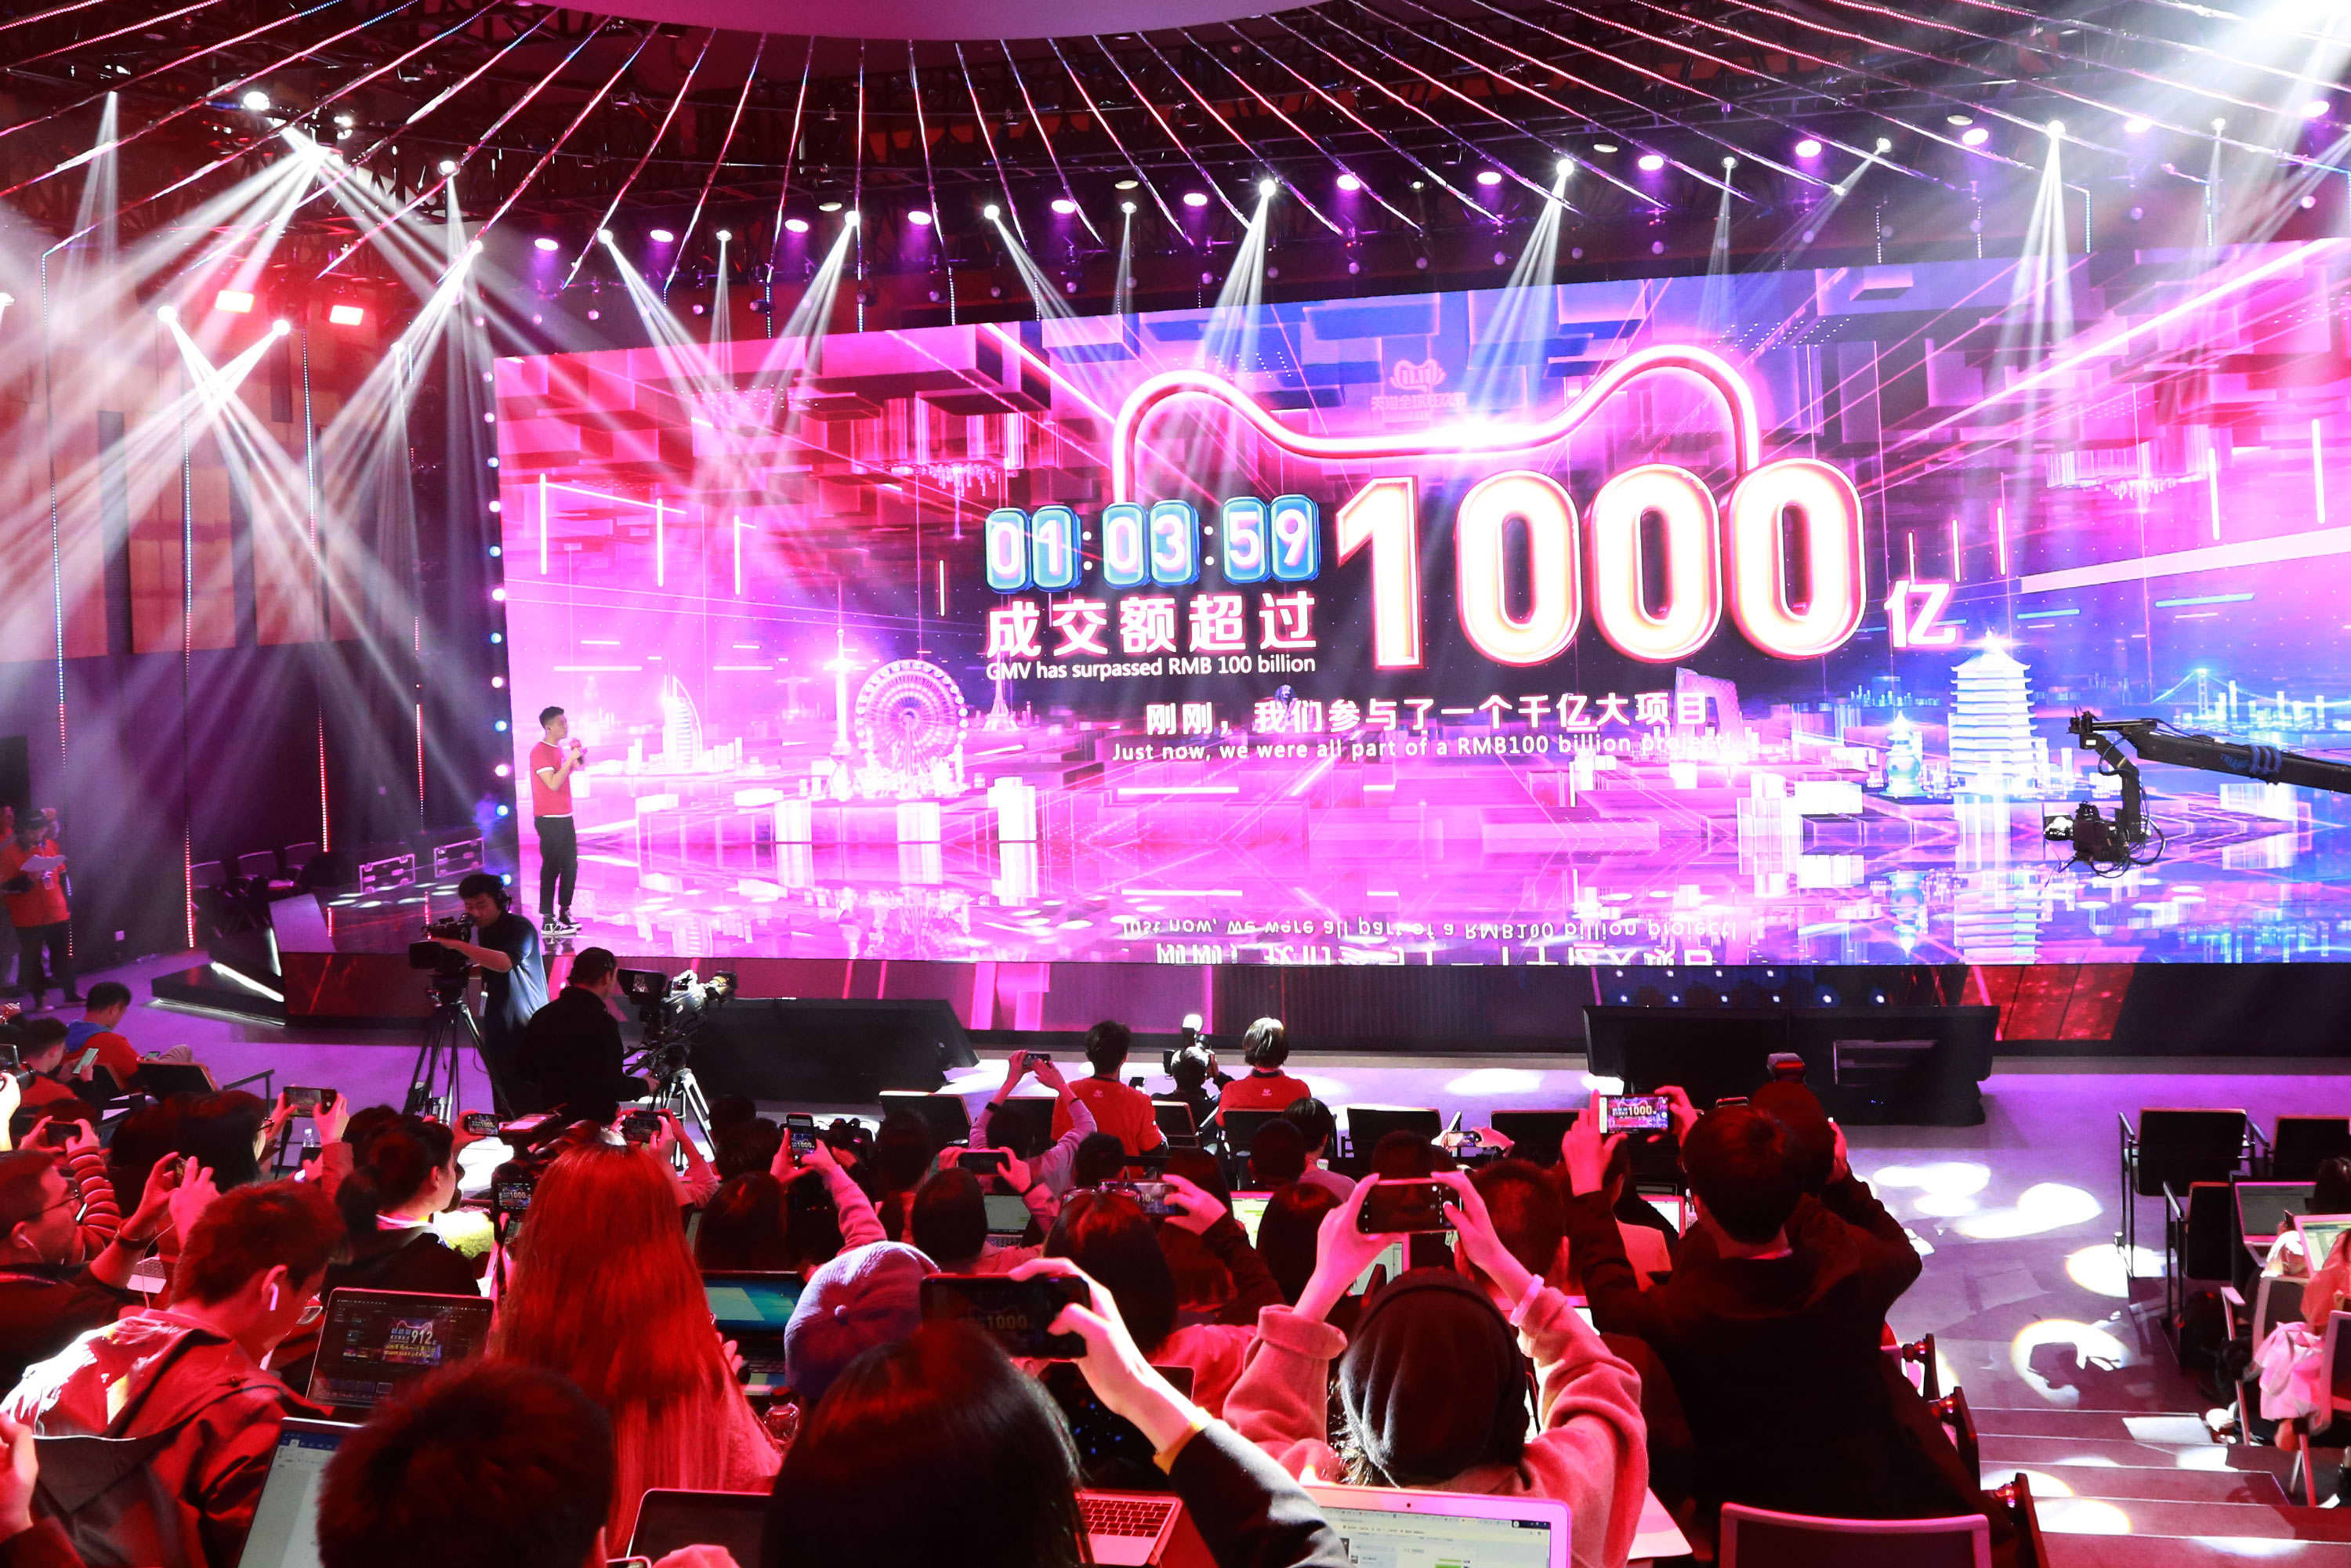 Alibaba Singles Day 2019 Record Sales On Biggest Shopping Day On singles' day in china, couriers clamor for more. alibaba breaks singles day record with over 30 billion in sales